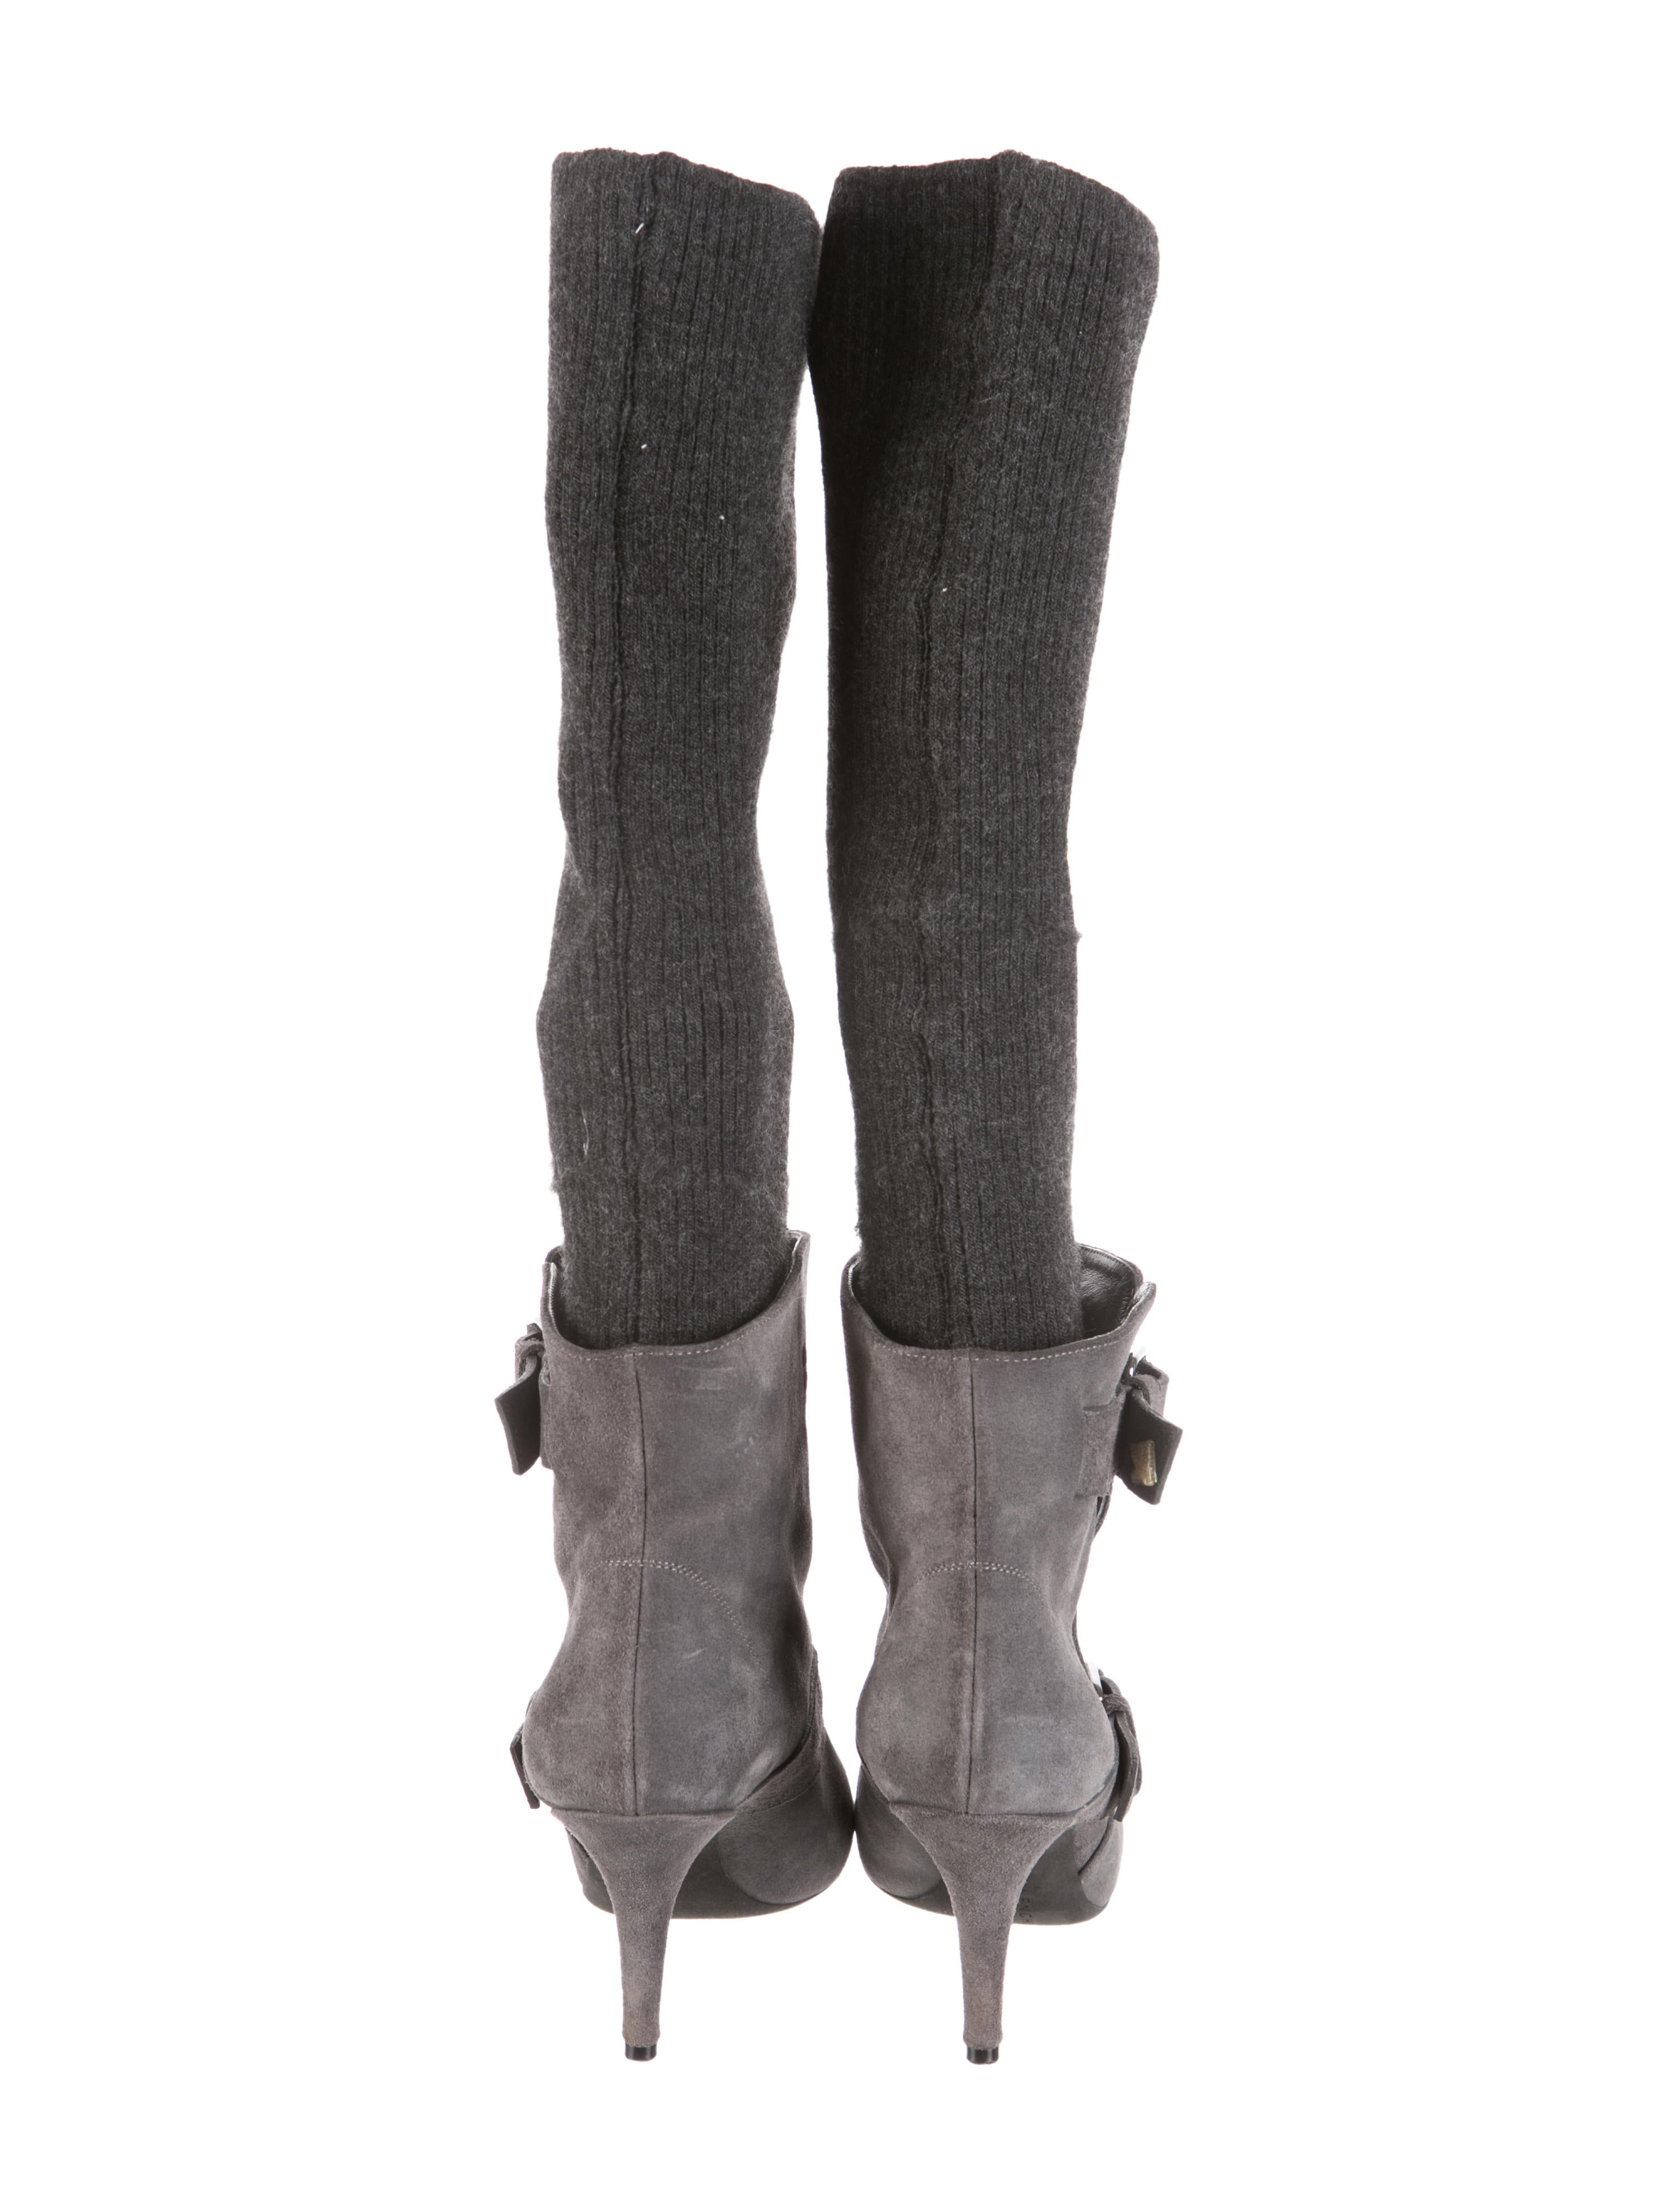 givenchy knit cuff knee high boots shoes giv29624